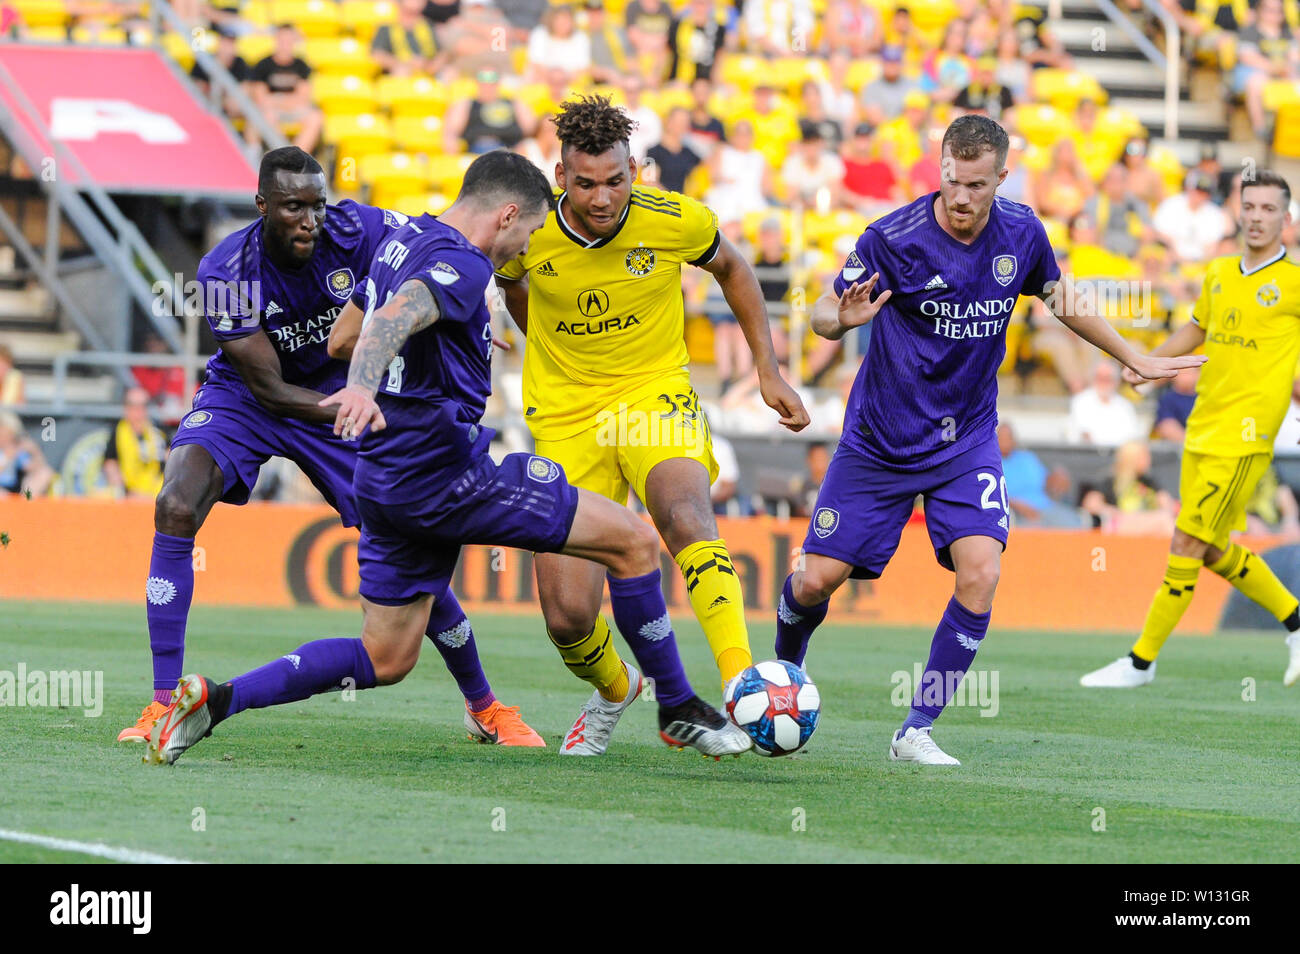 Saturday, June 29, 2019: Columbus Crew SC forward JJ Williams (33) tries to control the ball with Orlando City defender Kyle Smith (24), midfielder Oriol Rosell (20), and defender Lamine Sane (22) close by in the first half of the match between Orlando City and Columbus Crew SC at MAPFRE Stadium, in Columbus OH. Mandatory Photo Credit: Dorn Byg/Cal Sport Media. Orlando City 1 - Columbus Crew SC 0 after the first half - Stock Image